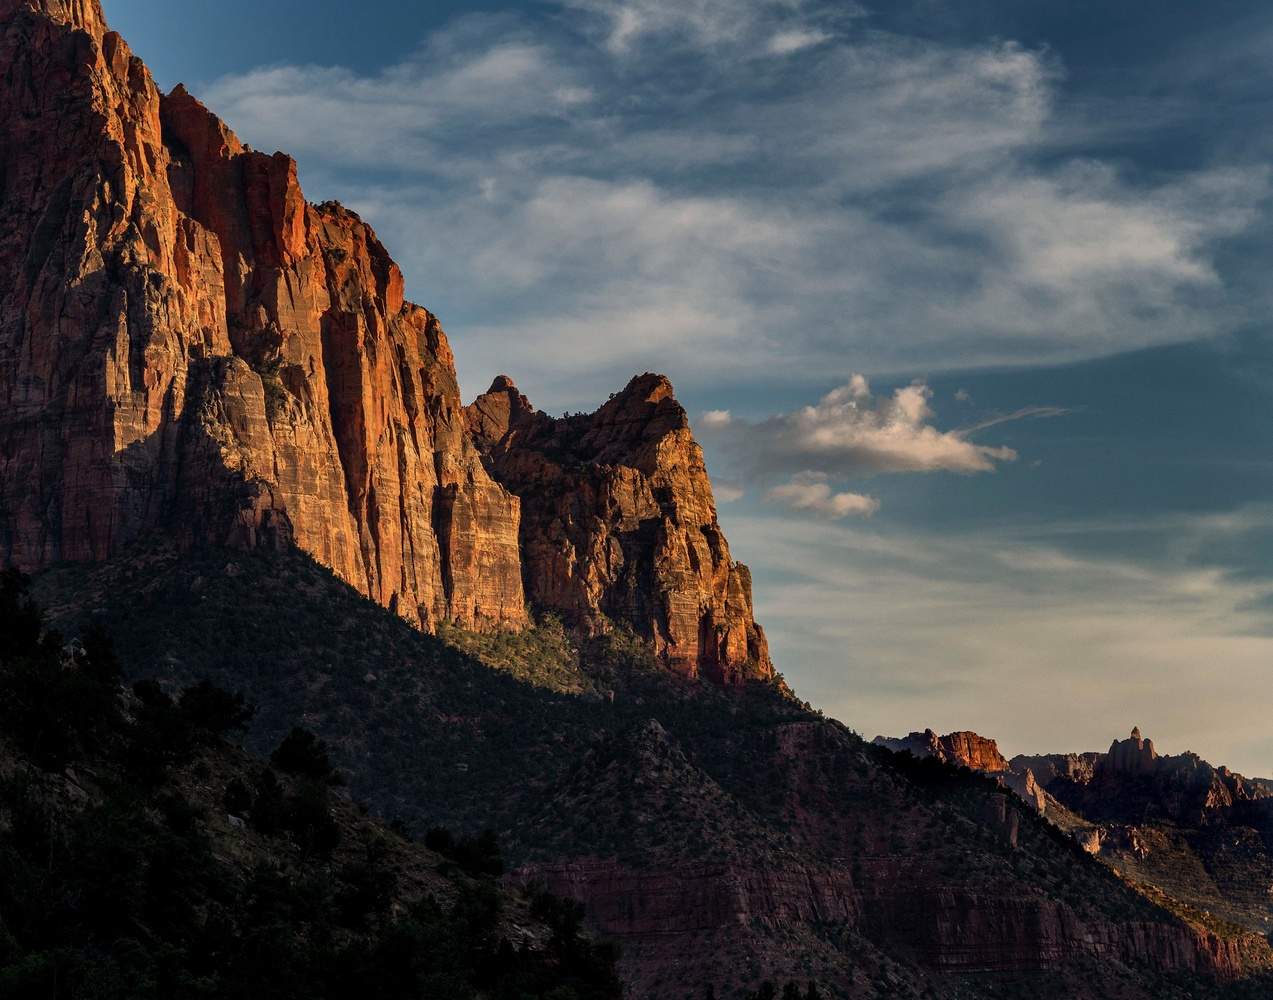 Sunset at Zion National Park by Mark Houston